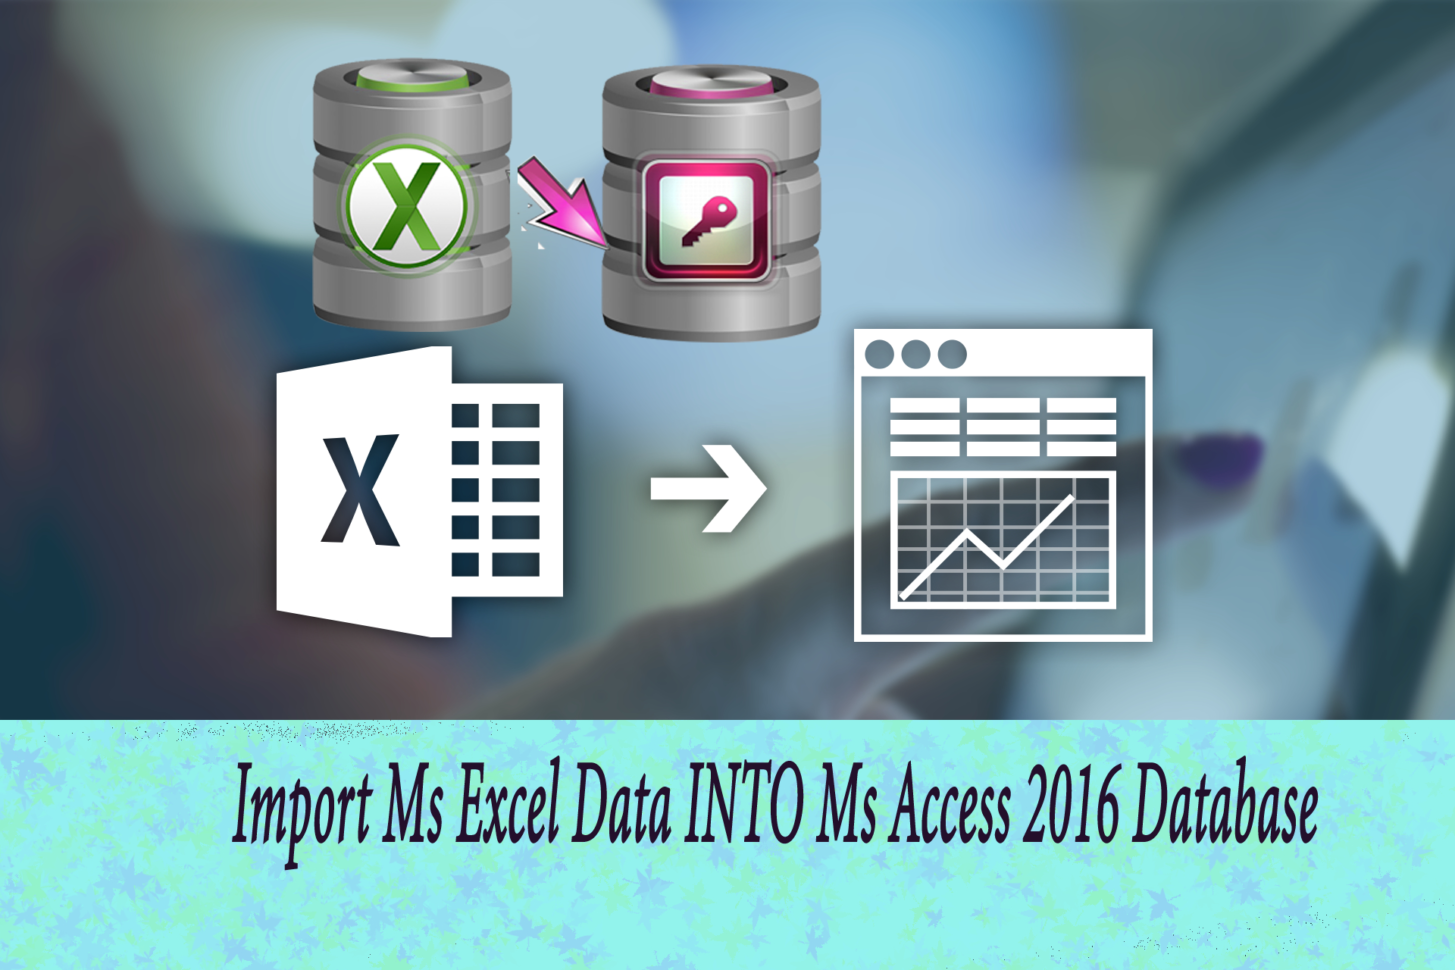 Convert Excel Spreadsheet To Access Database 2016 Inside How To Import Or Link Ms Excel Data Into Ms Access 2016/2013/2010